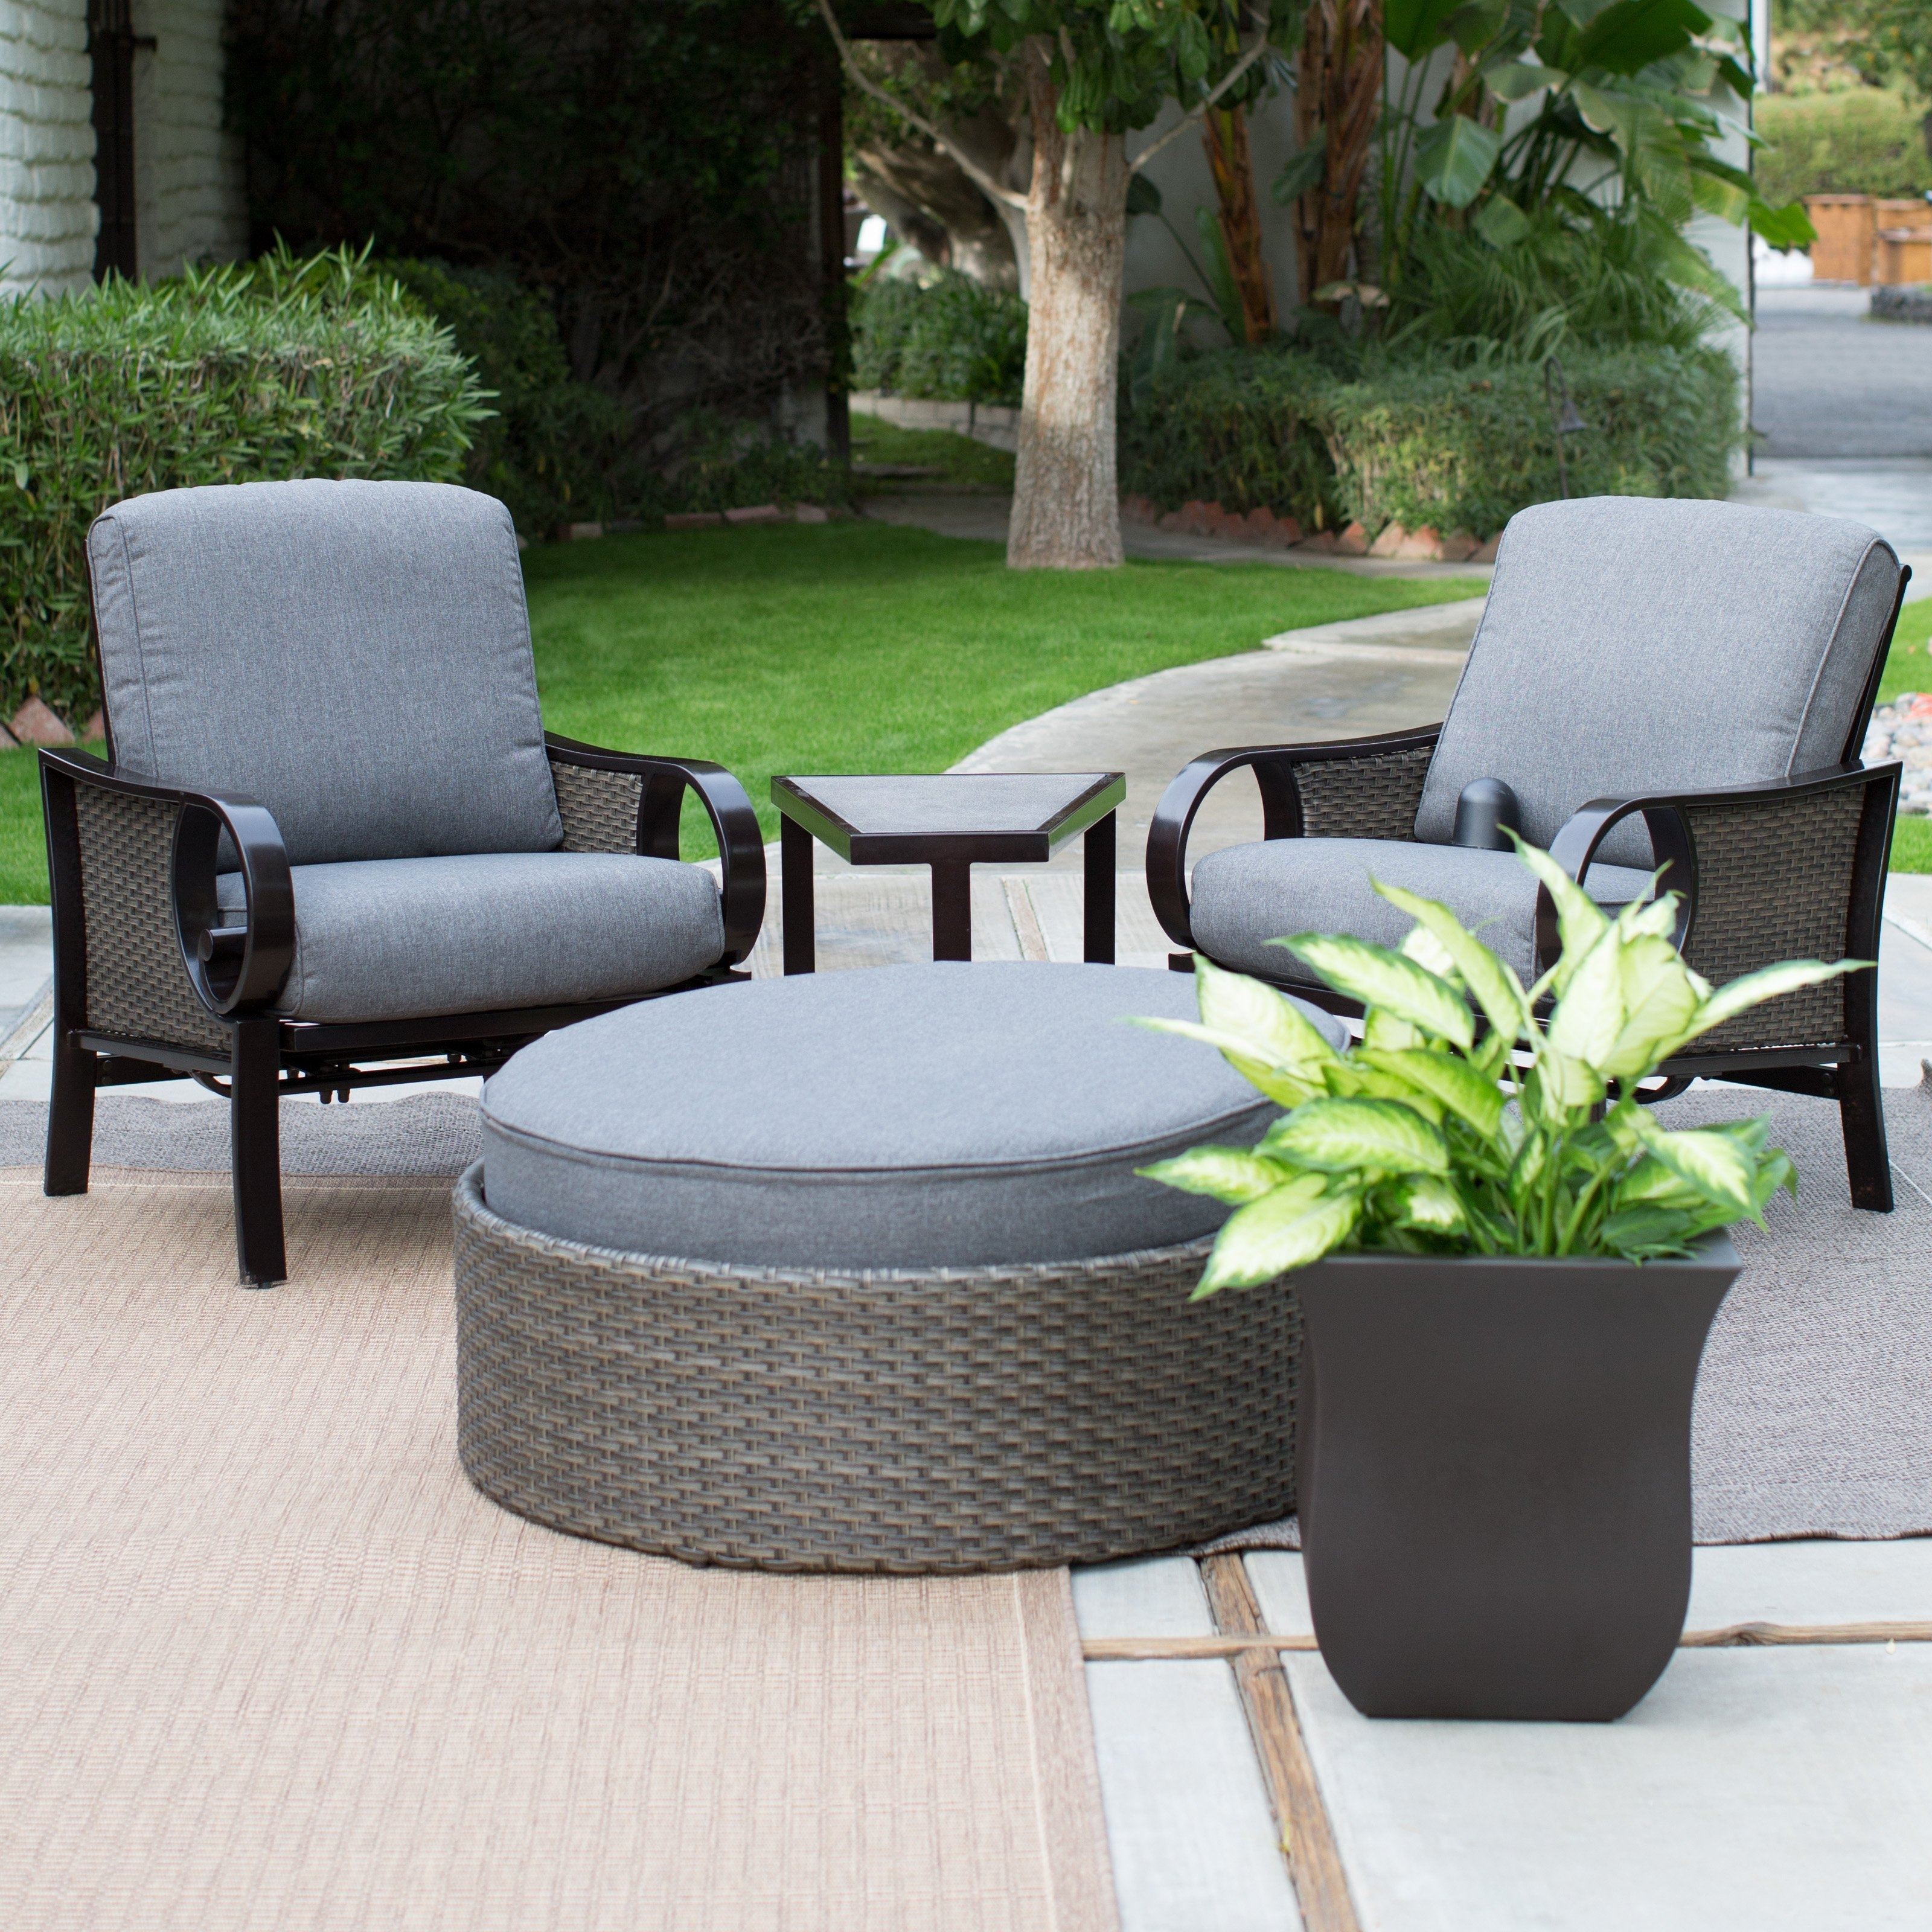 Patio Conversation Sets With Ottomans Throughout Best And Newest 22 Creative Patio Conversation Sets With Ottoman – Pixelmari (View 19 of 20)